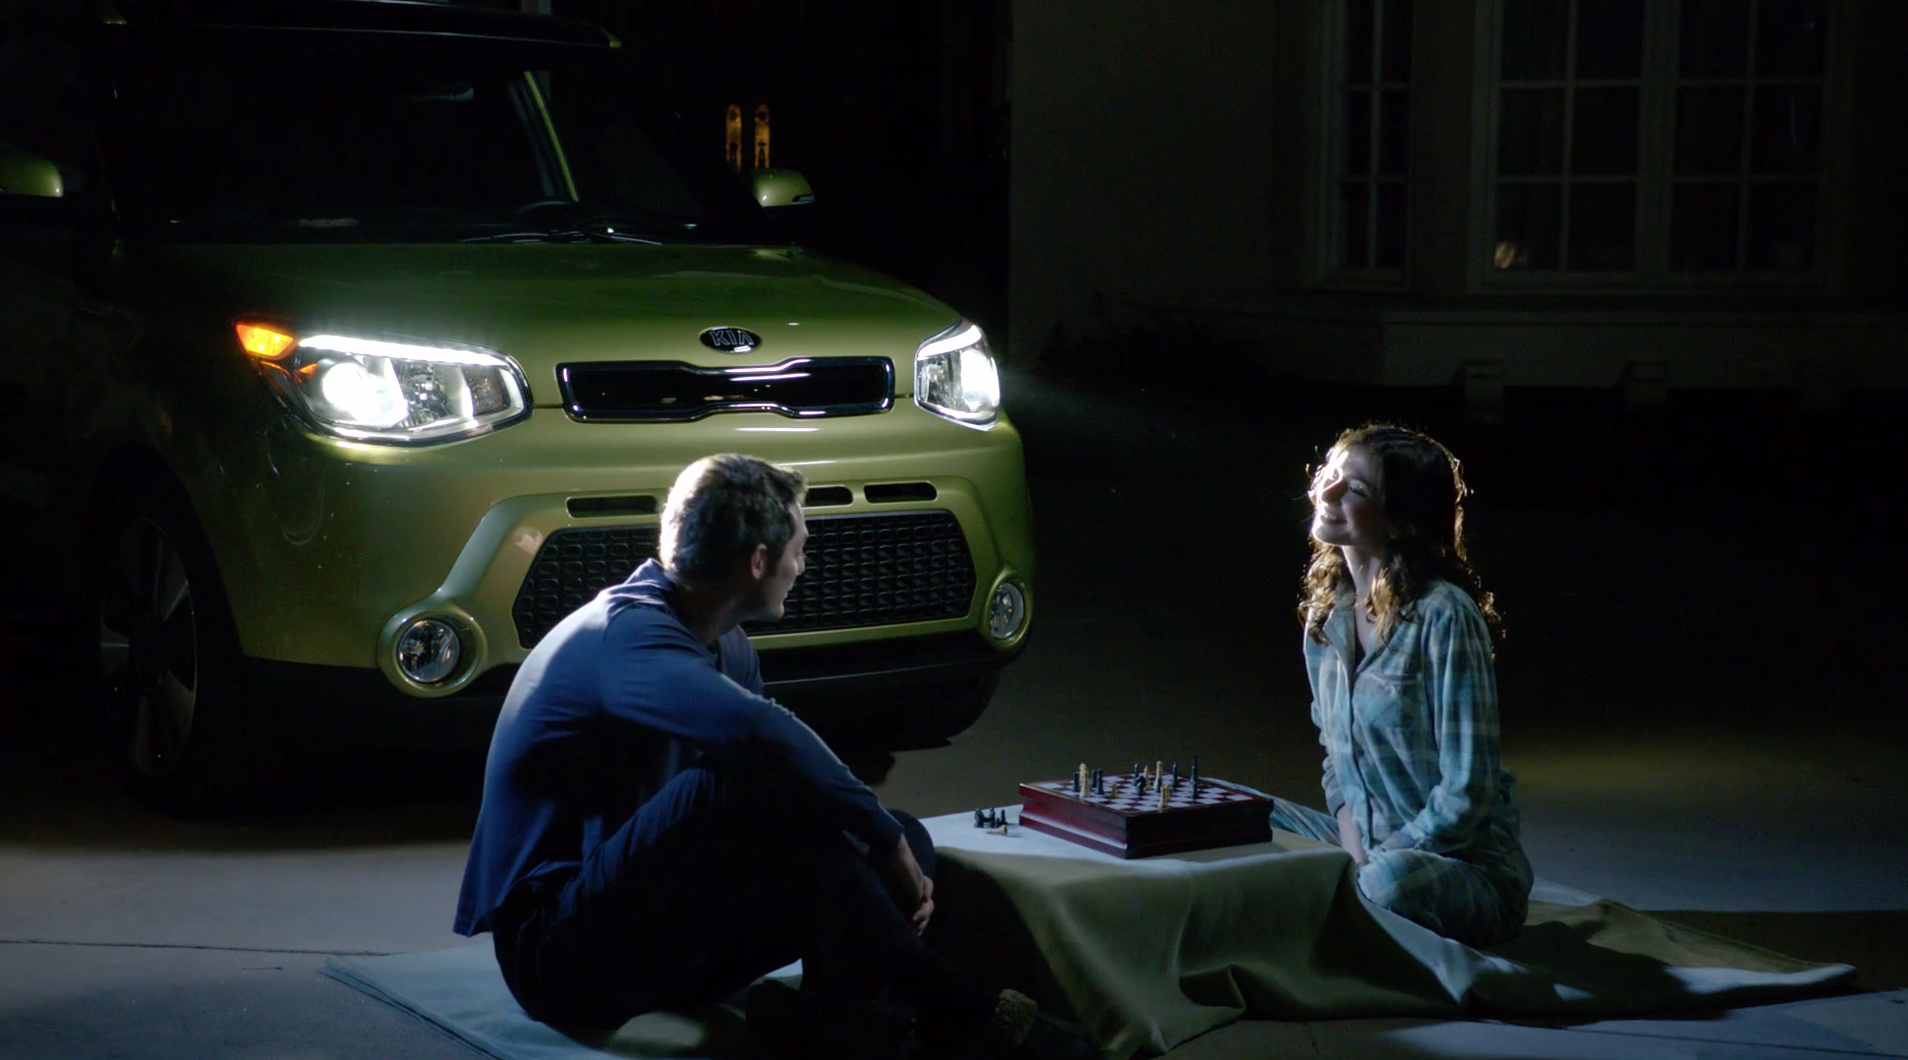 Watch The Real Stars Come Out With The 2014 Kia Soul Led Positioning Lights Https Www Youtube Com Watch V Ktxc443 P9glist Plgurp Kia Soul Kia Monster Trucks